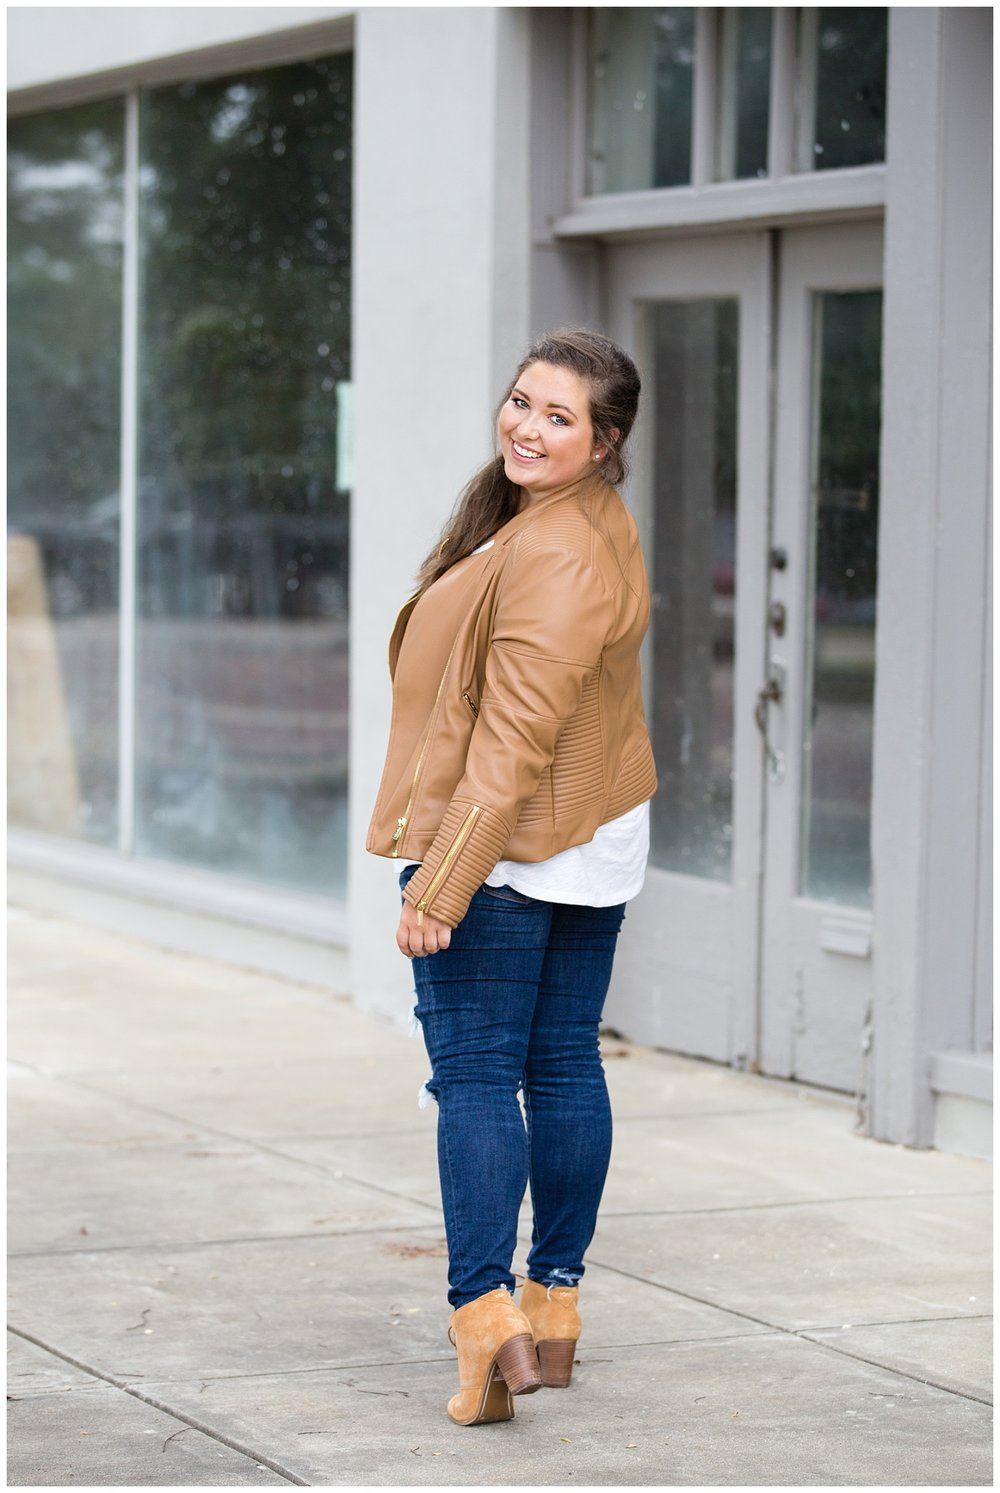 downtown opelika senior pictures lauren beesley photography